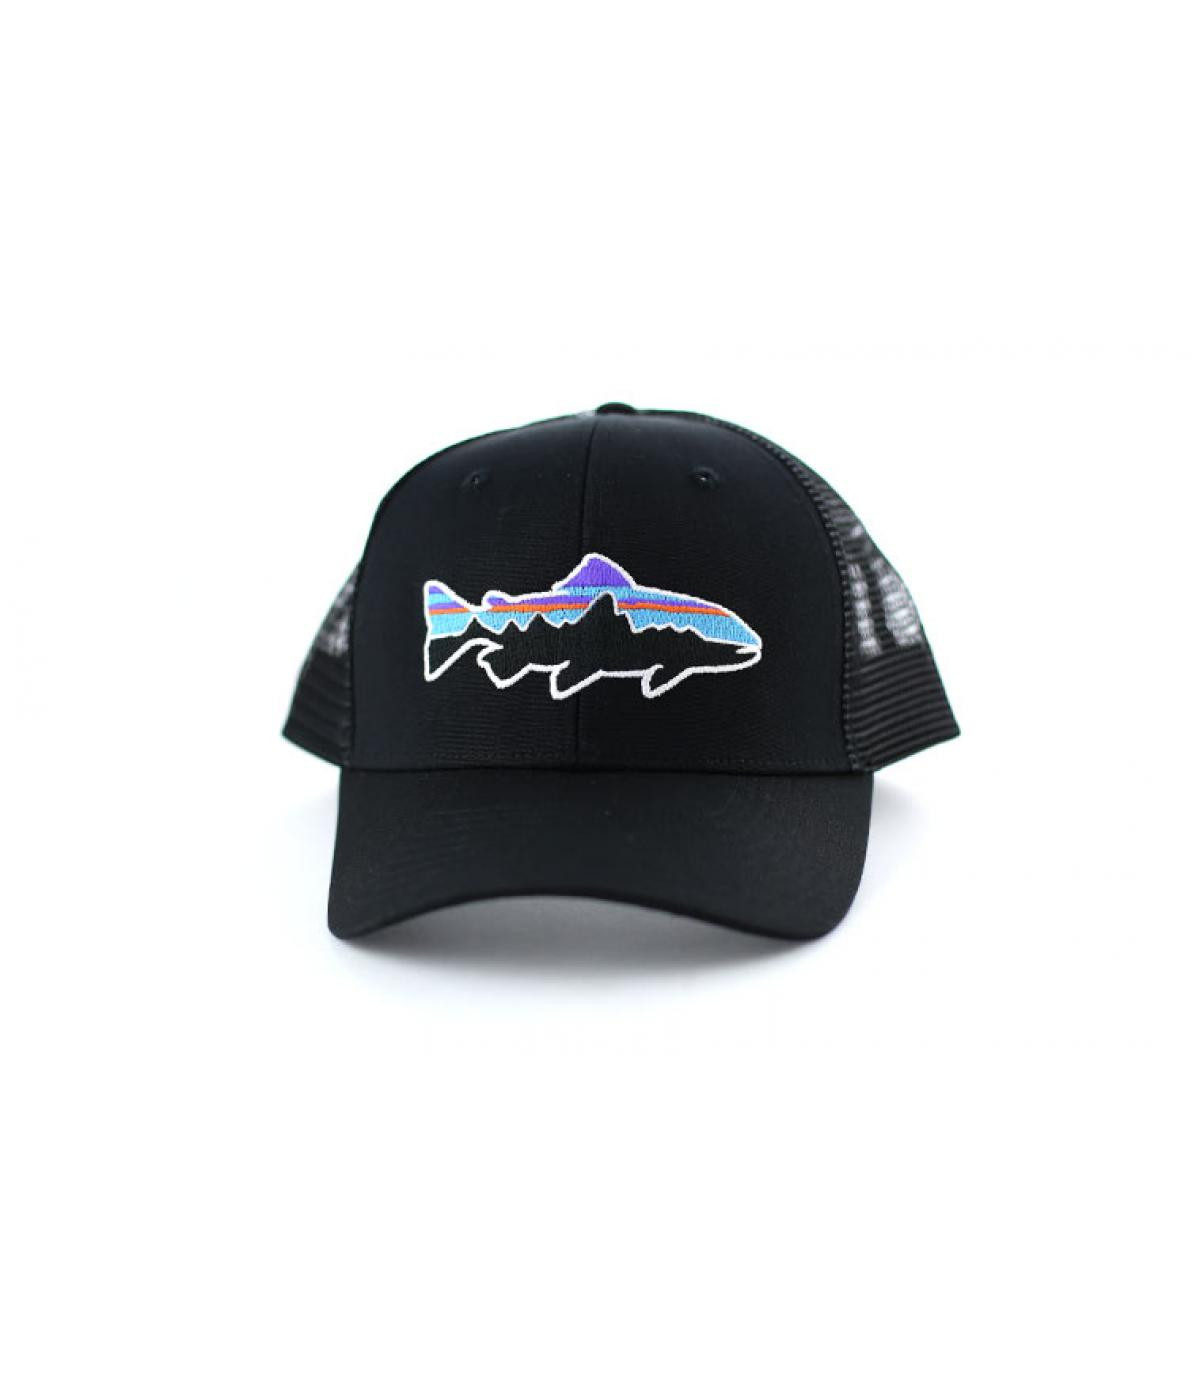 d981f94a4a07c Black trucker cap - Fitz Roy Trout trucker by Patagonia. Headict